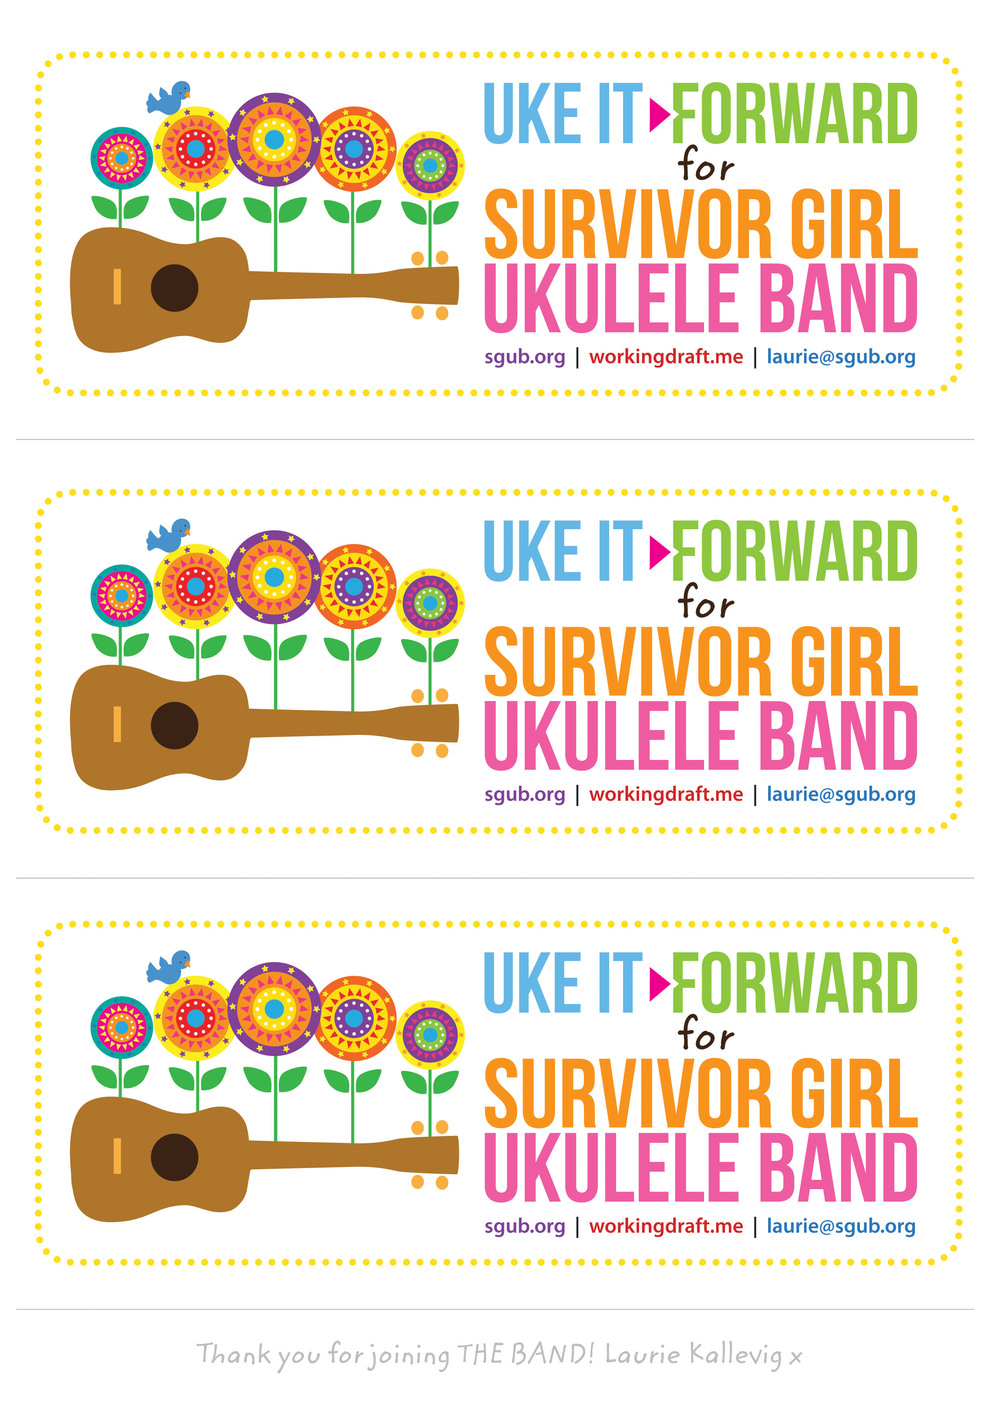 SGUB UKE IT FORWARD handout A4.jpg